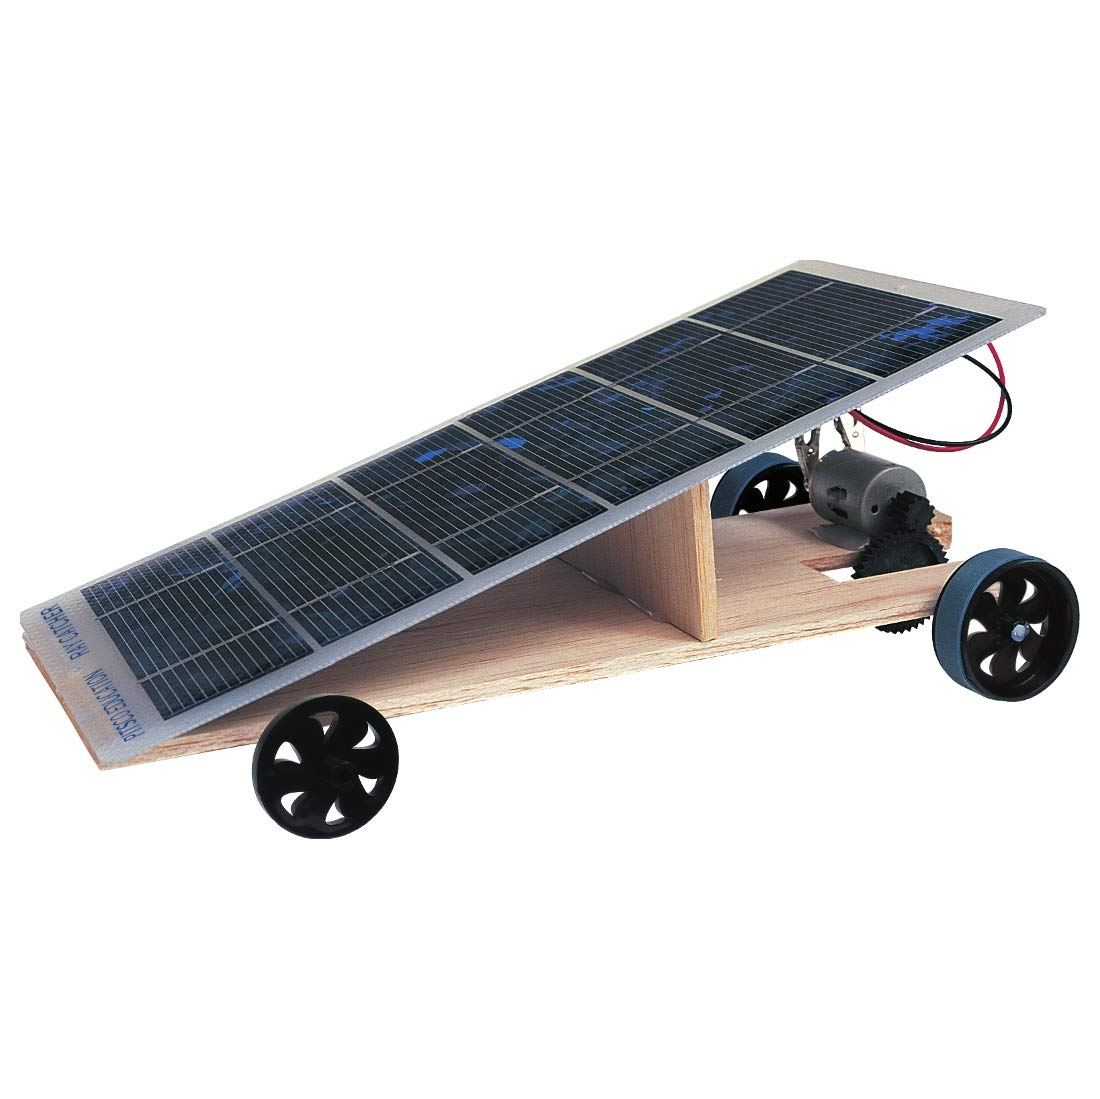 Pitsco Ray Catcher Solar Car Consumables Kit (For 10 Students) by Pitsco (Image #2)